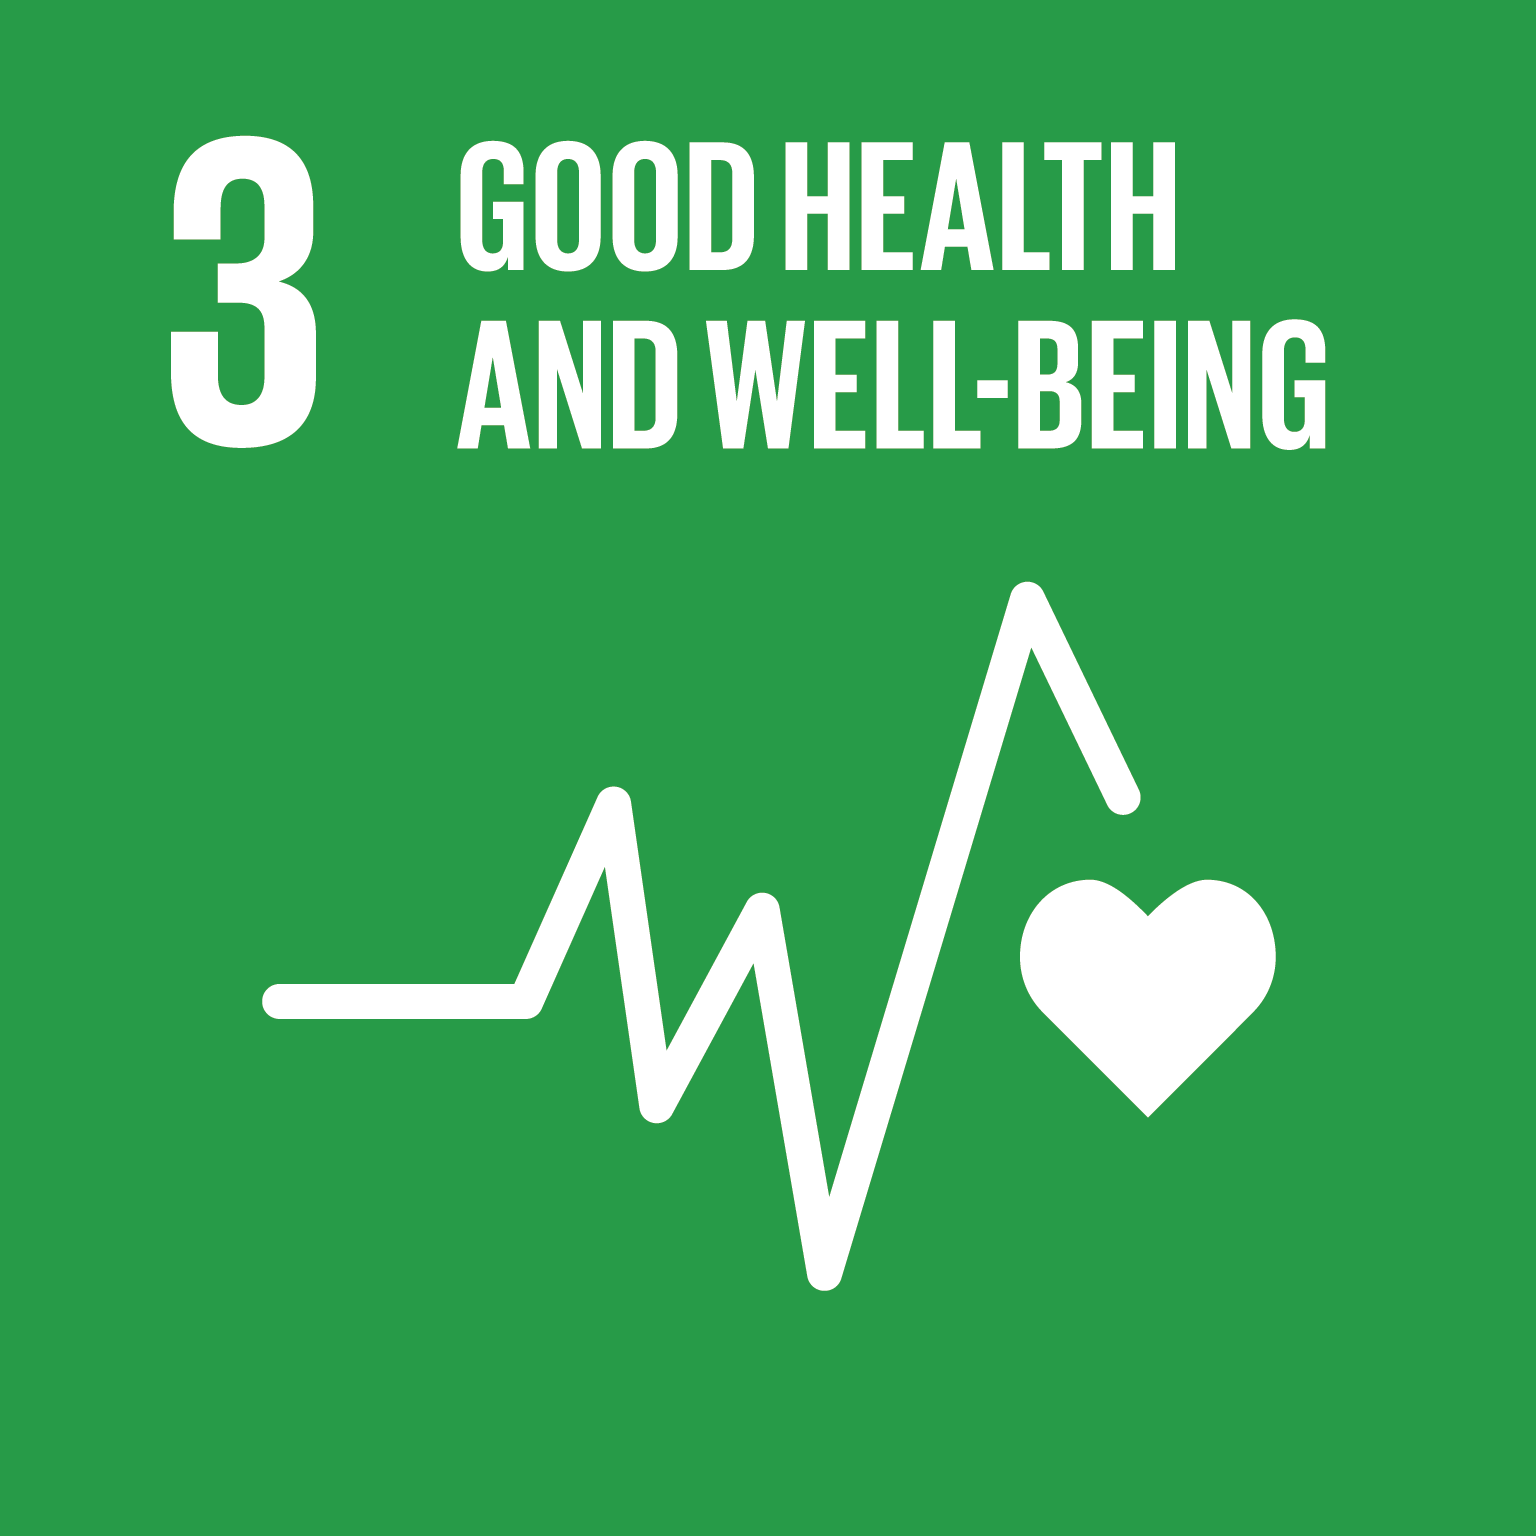 Goal 3 Department Of Economic And Social Affairs